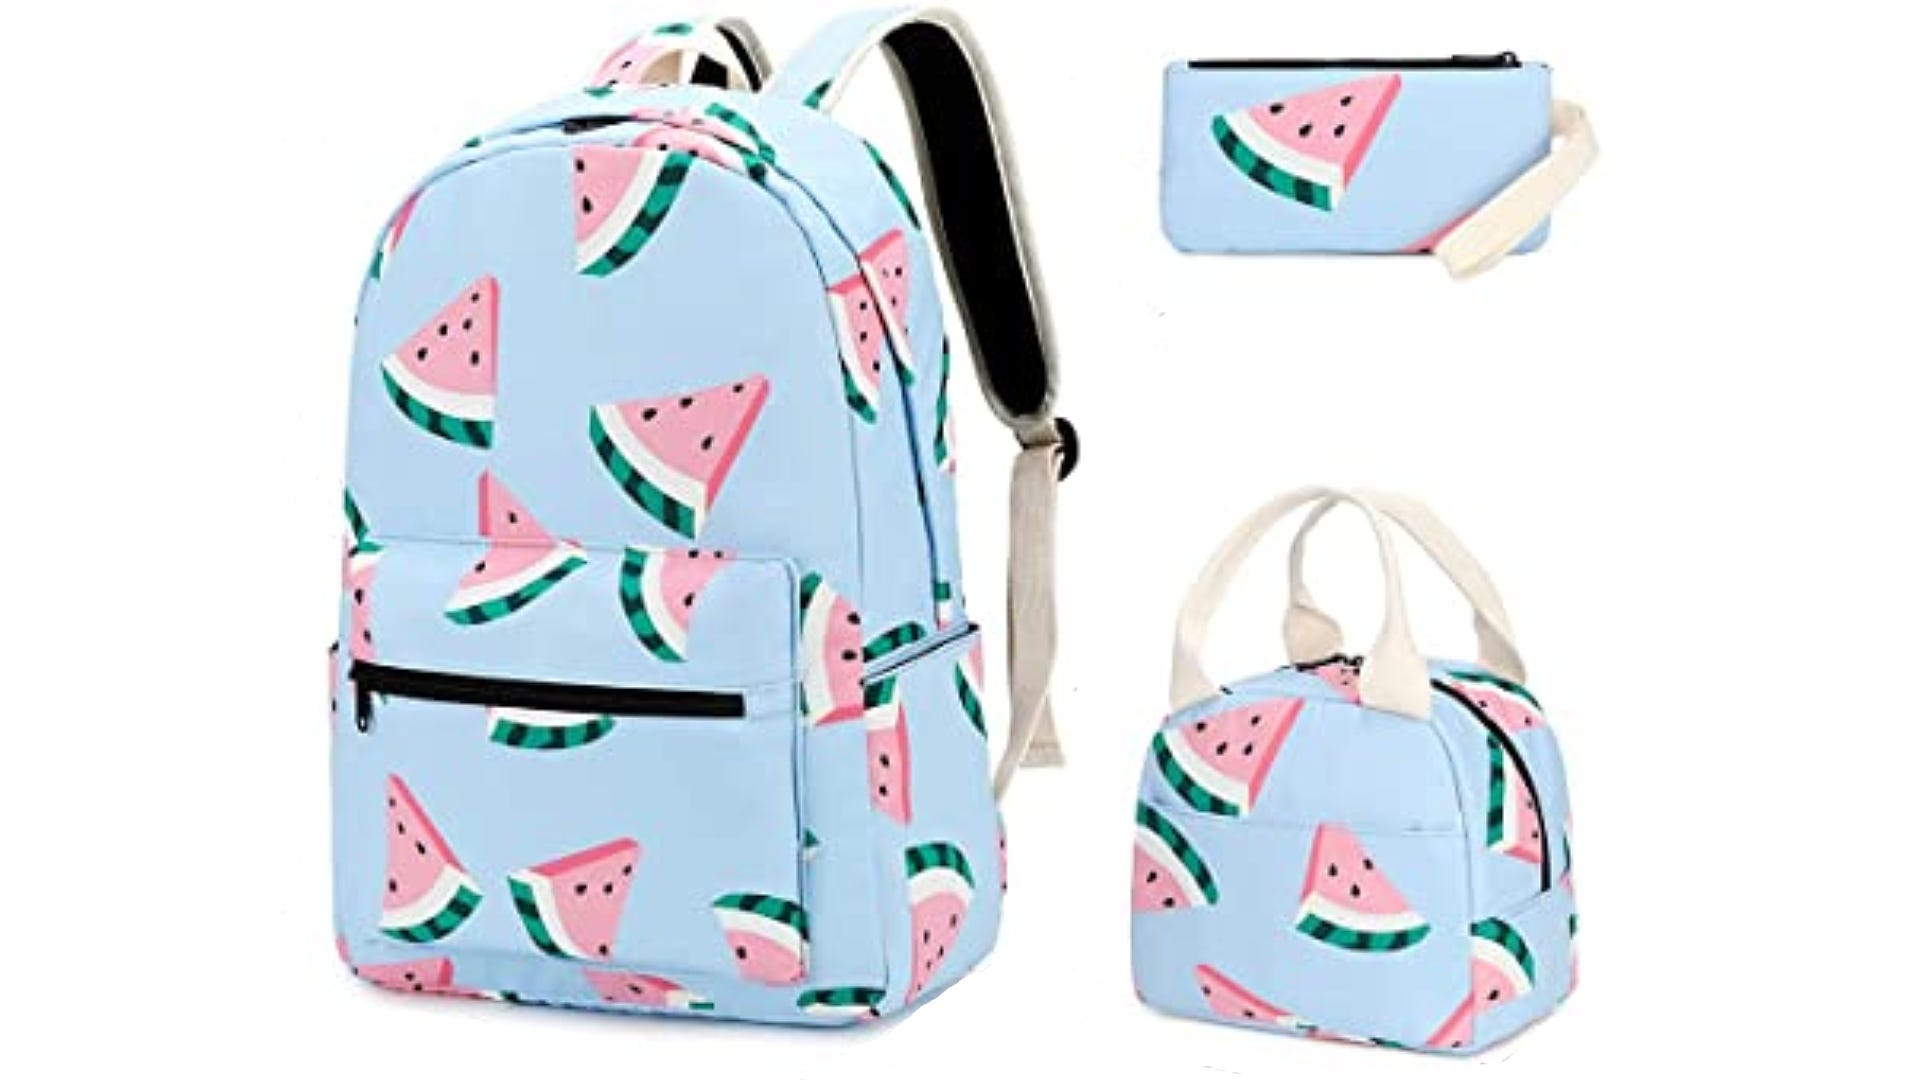 A blue backpack, lunchbox, and pencil case with a watermelon print.